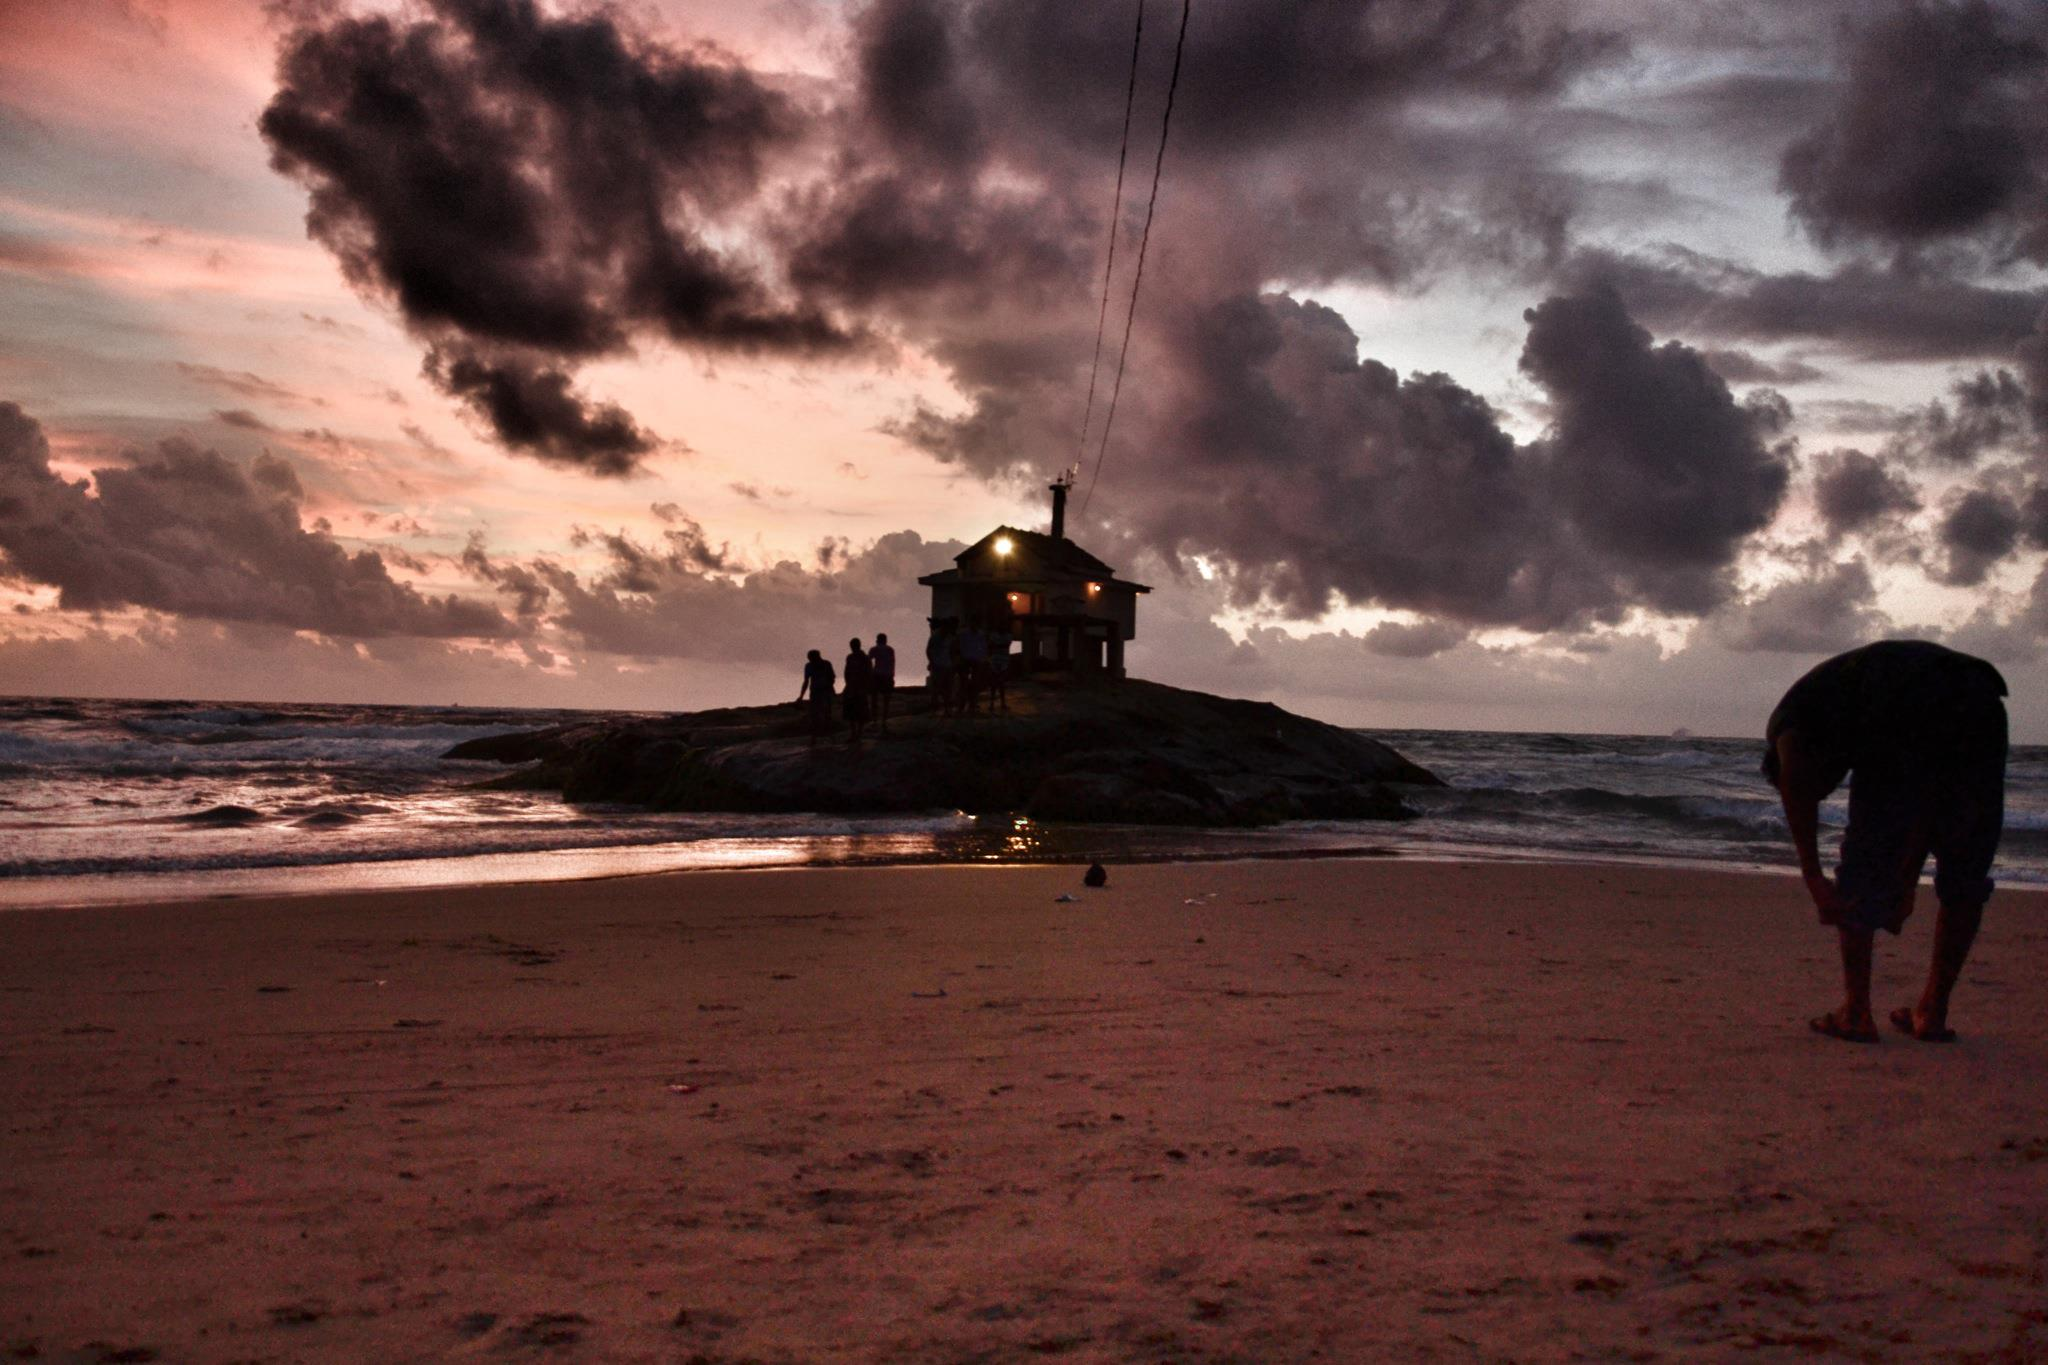 Evening Sunset by Mount Lavinia-Colombo